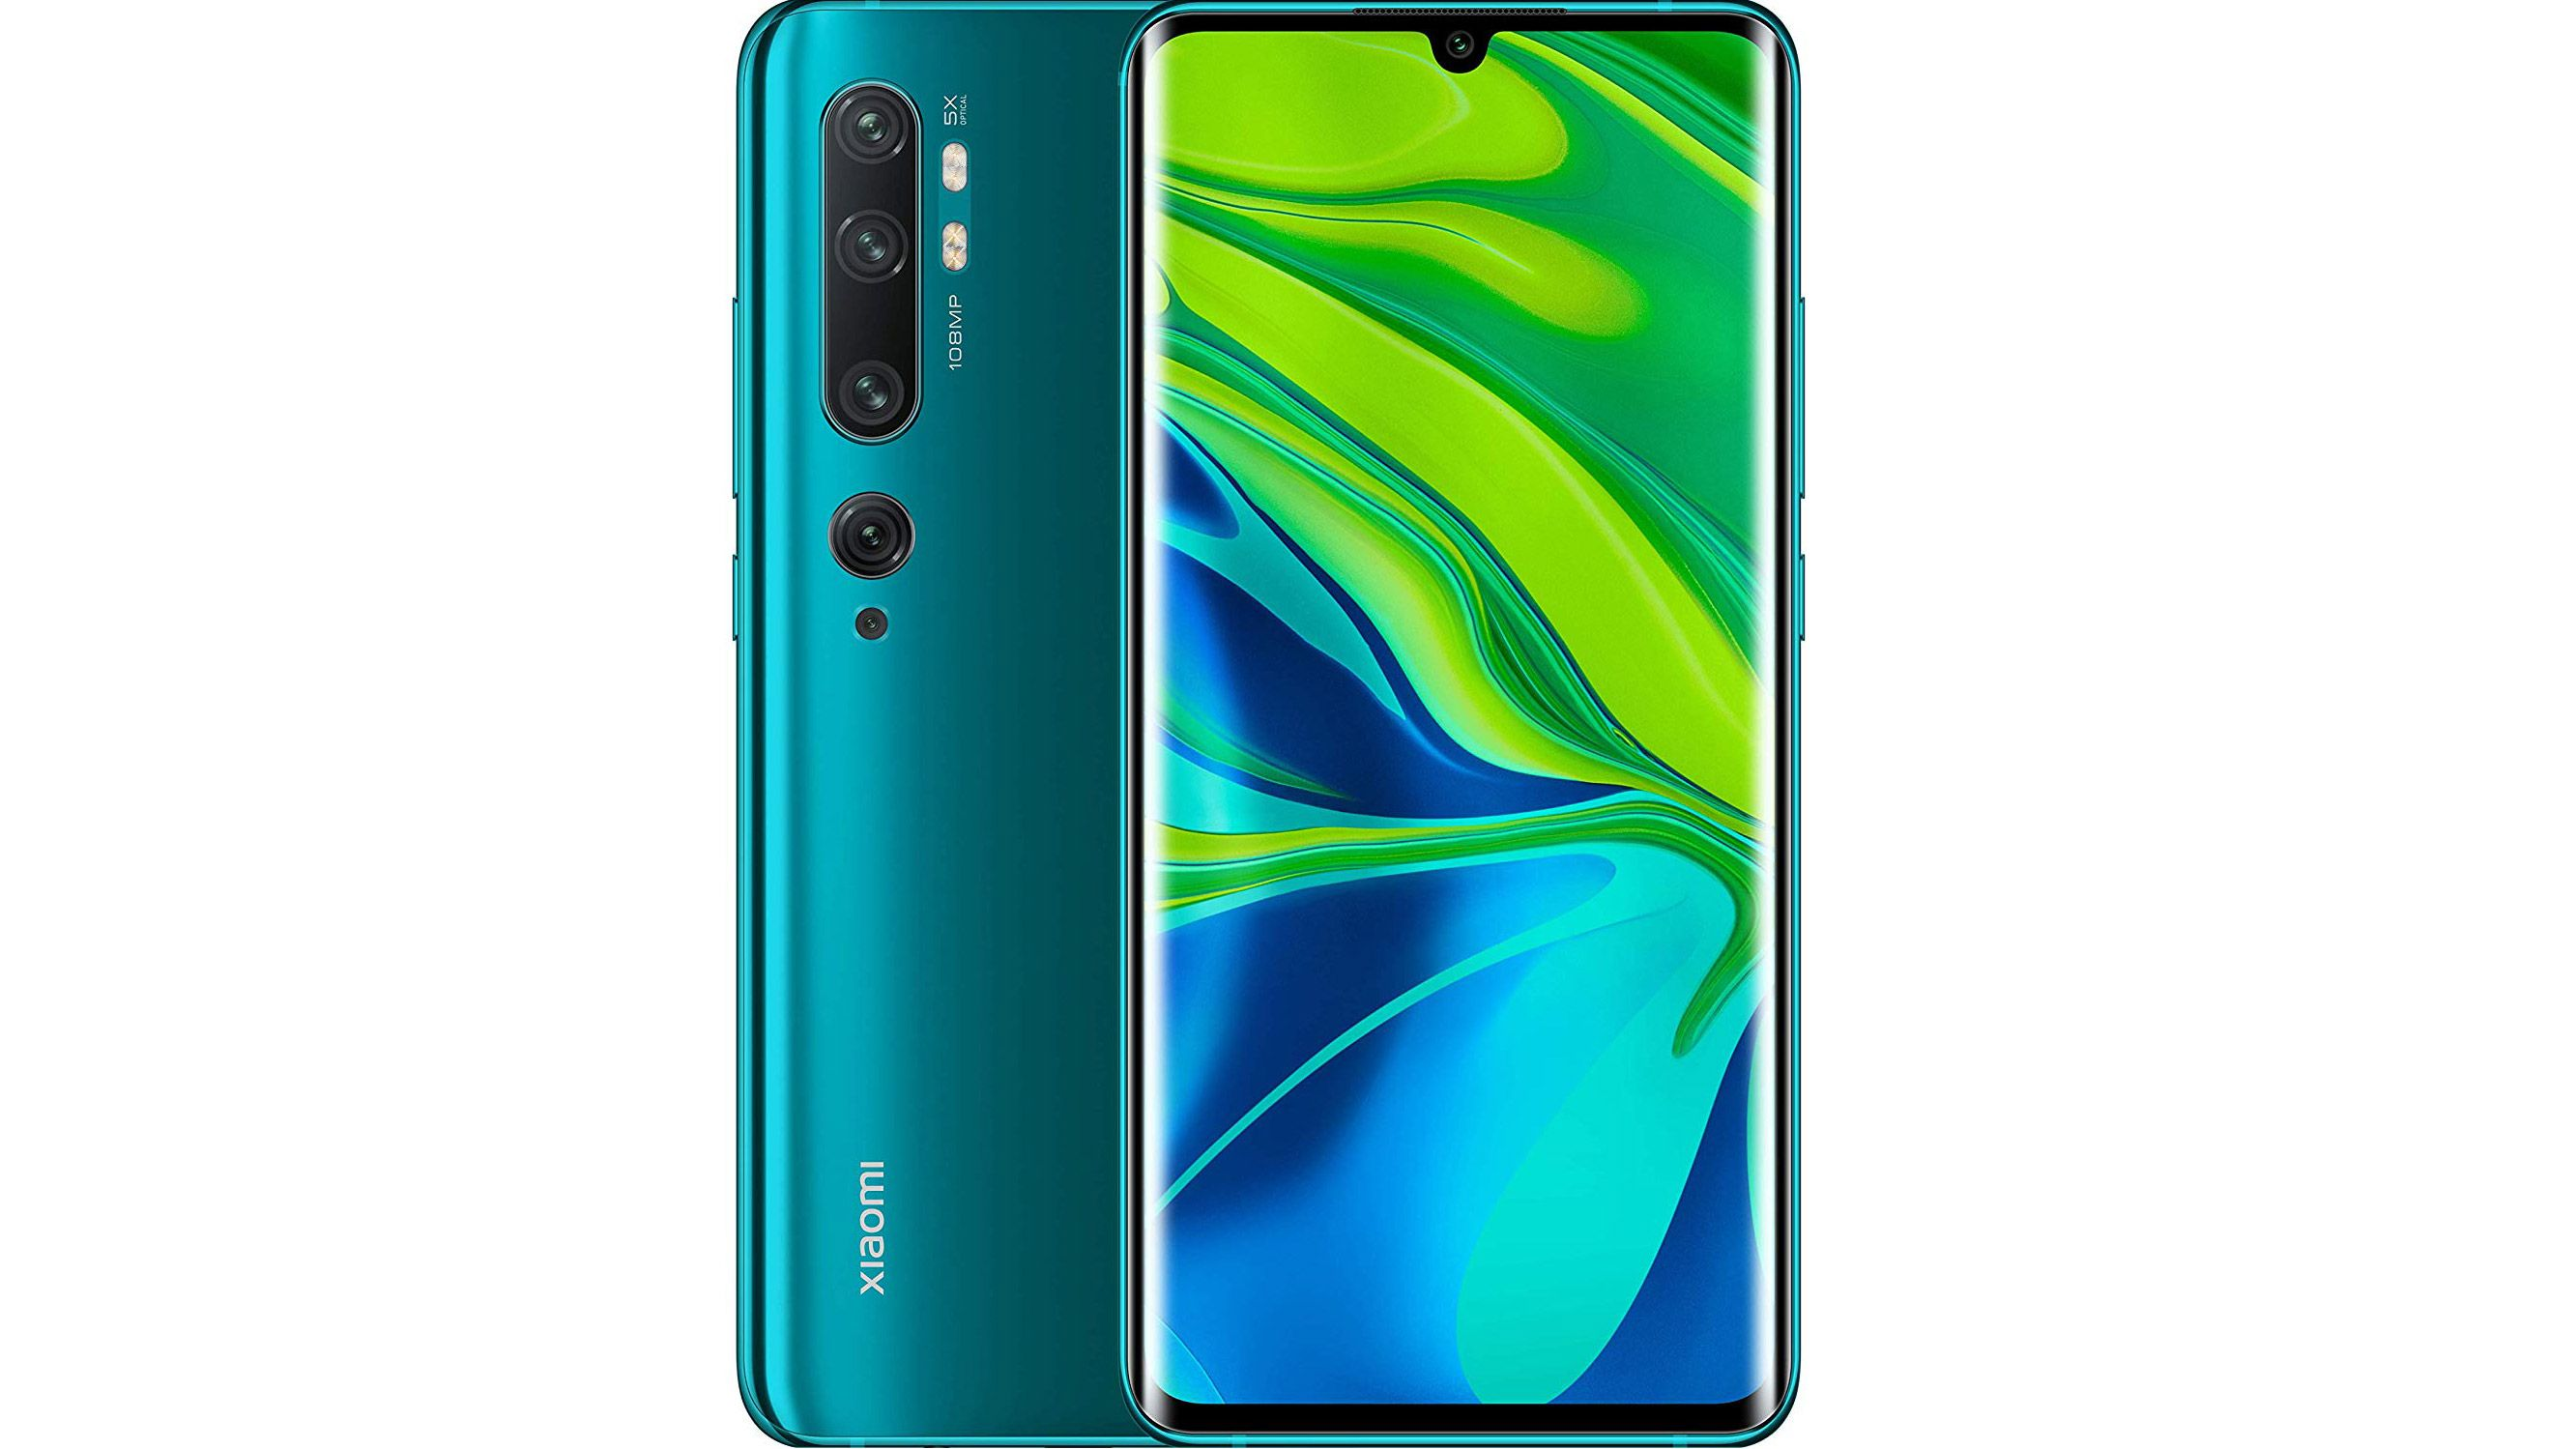 Best Camera Phone 2021 Our Picks For The Best Smartphone Cameras Right Now Camera Phone Top Smartphones Best Smartphone